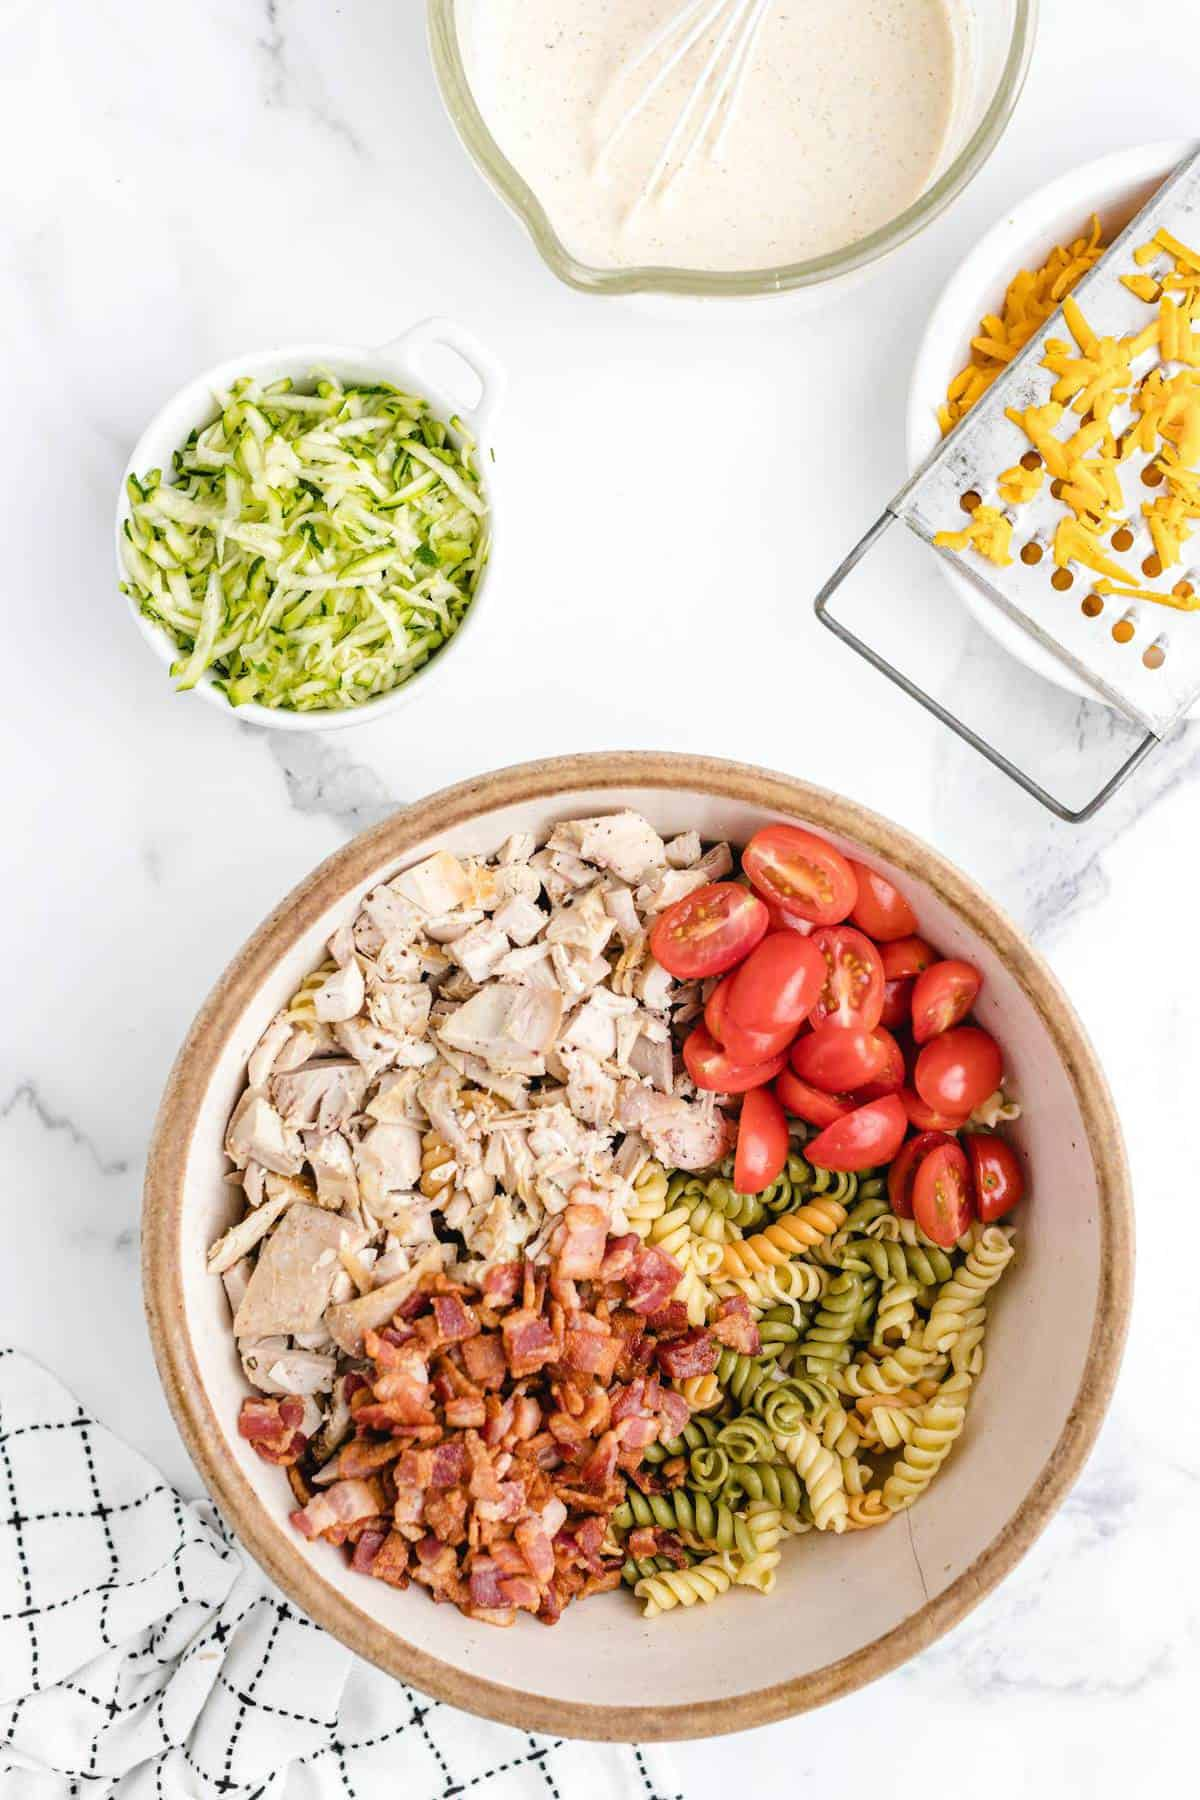 Add chicken, pasta, tomatoes, cooked bacon in a large bowl